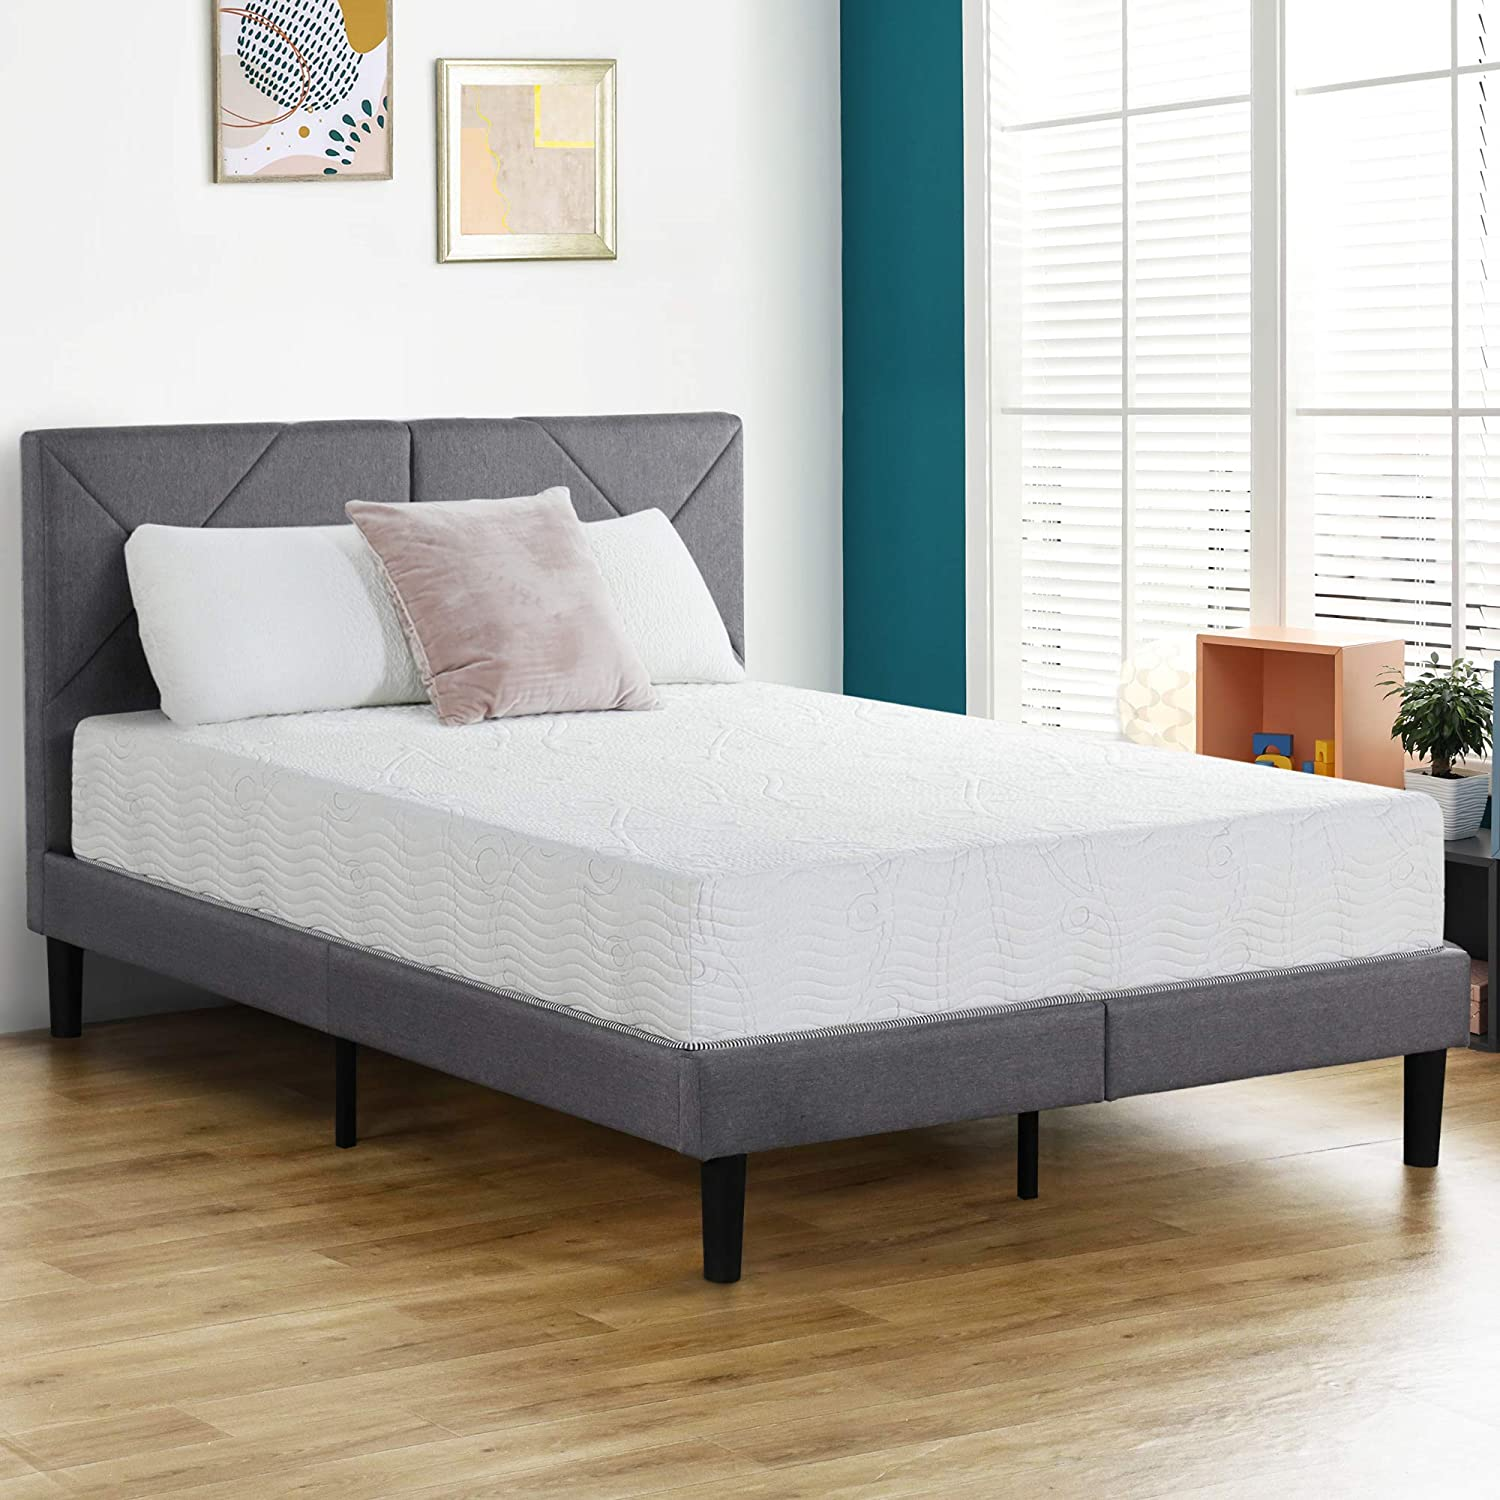 Best Mattress for Platform Bed- Critics opinion and Direction 2